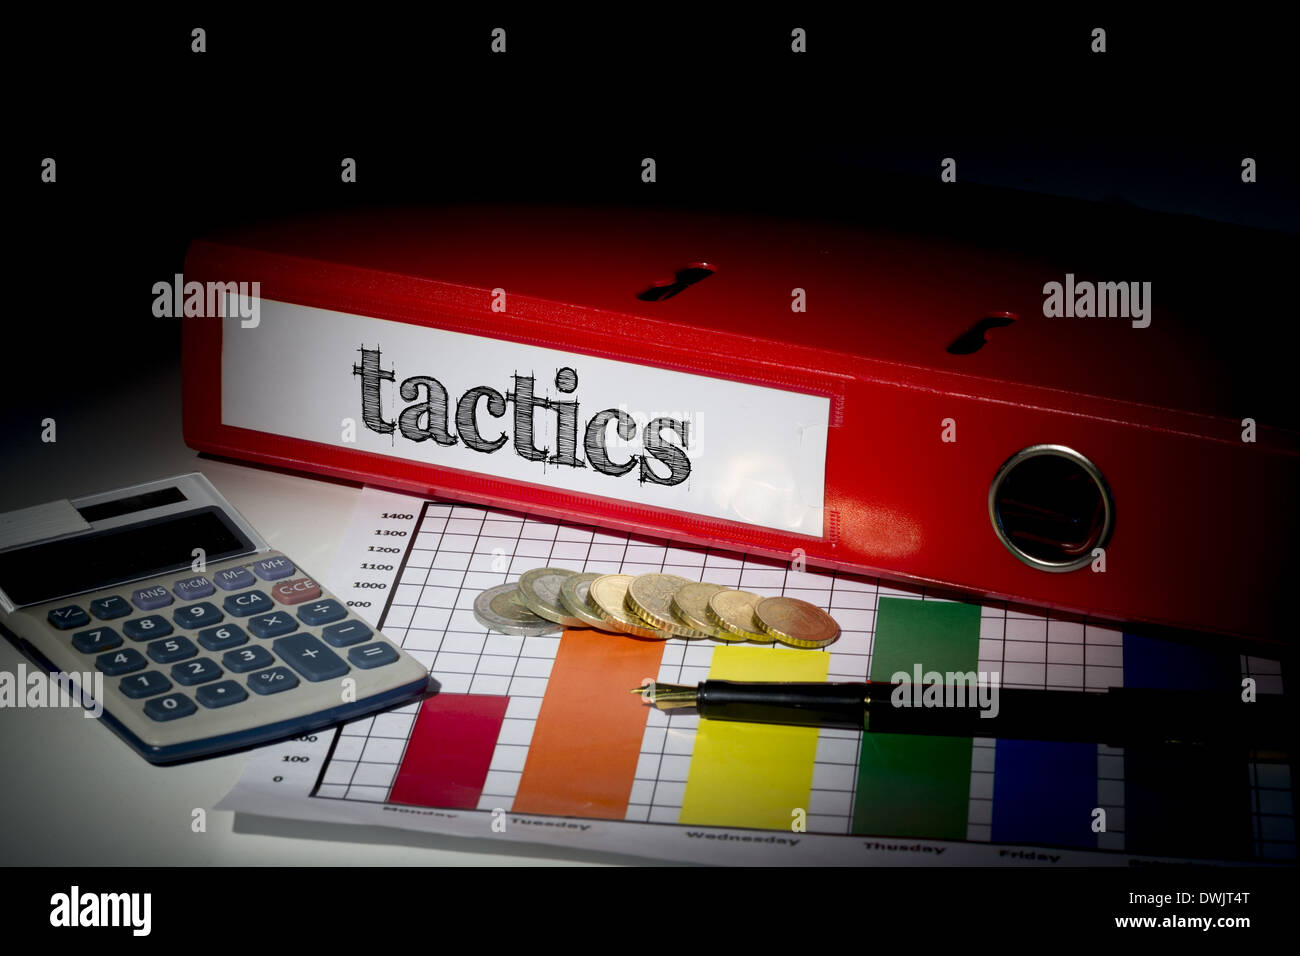 Tactics on red business binder - Stock Image